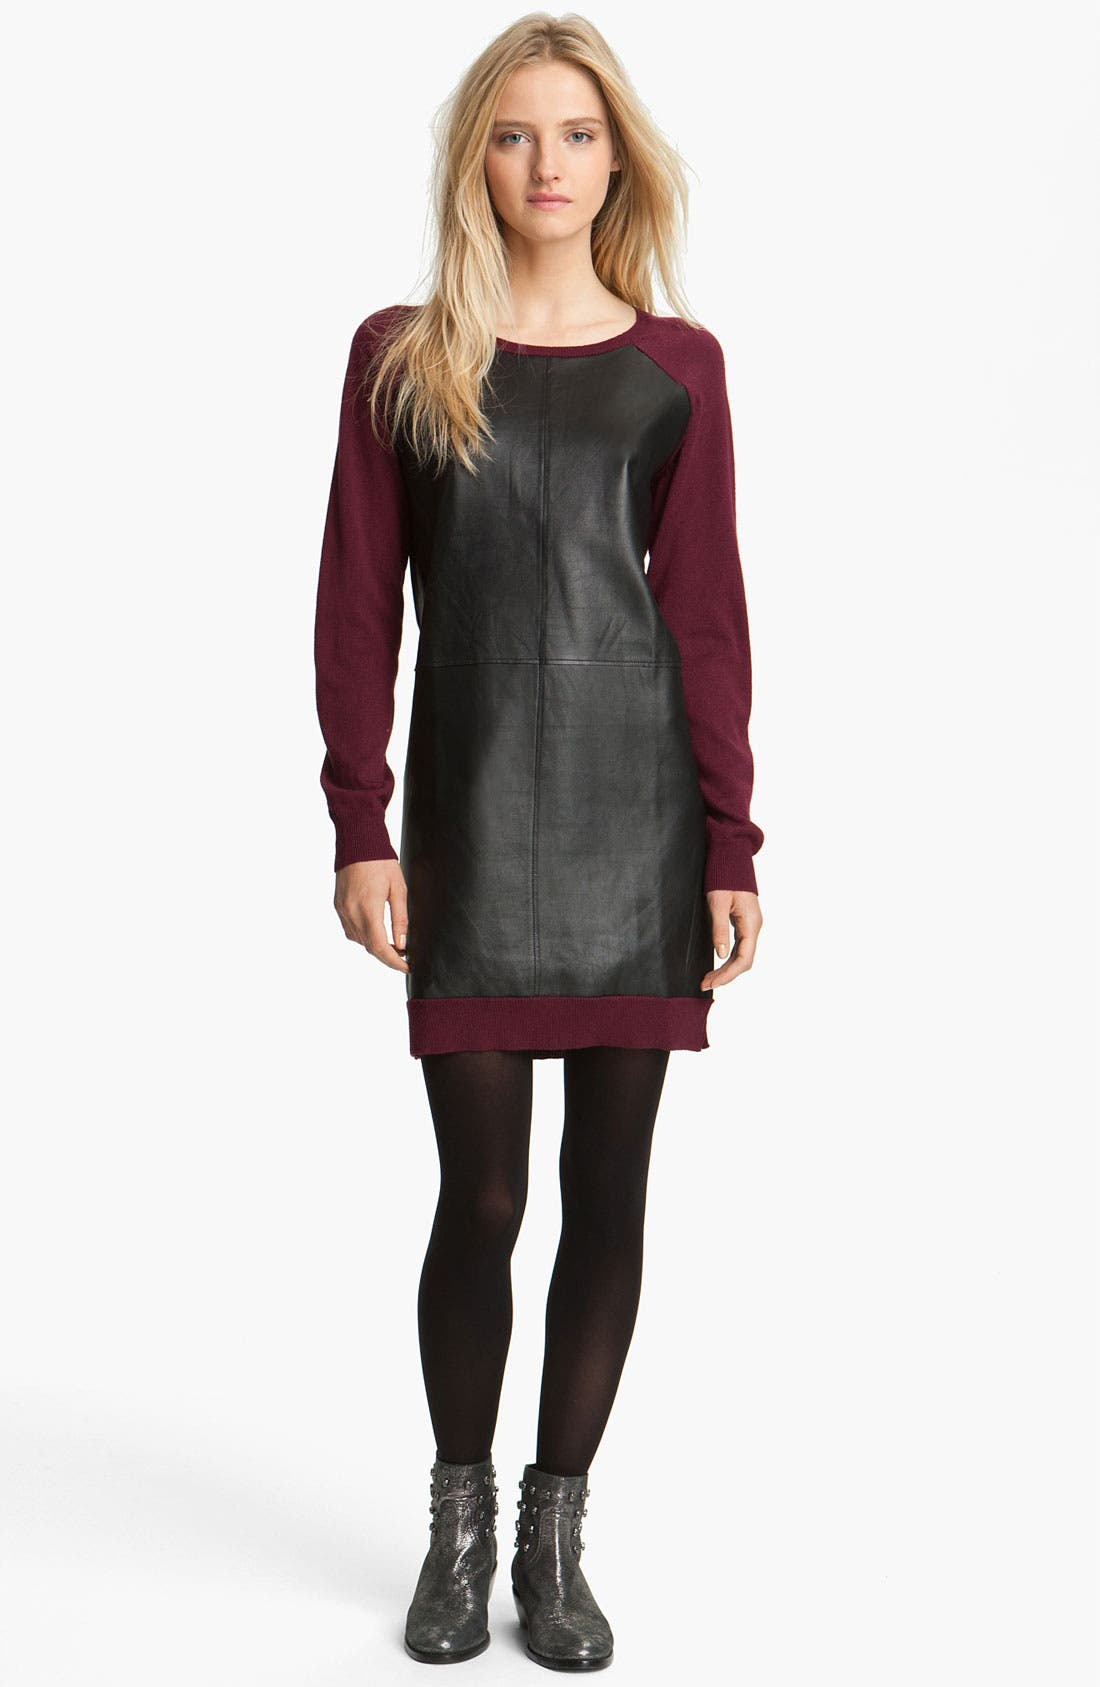 Alternate Image 1 Selected - Zadig & Voltaire Leather & Knit Dress